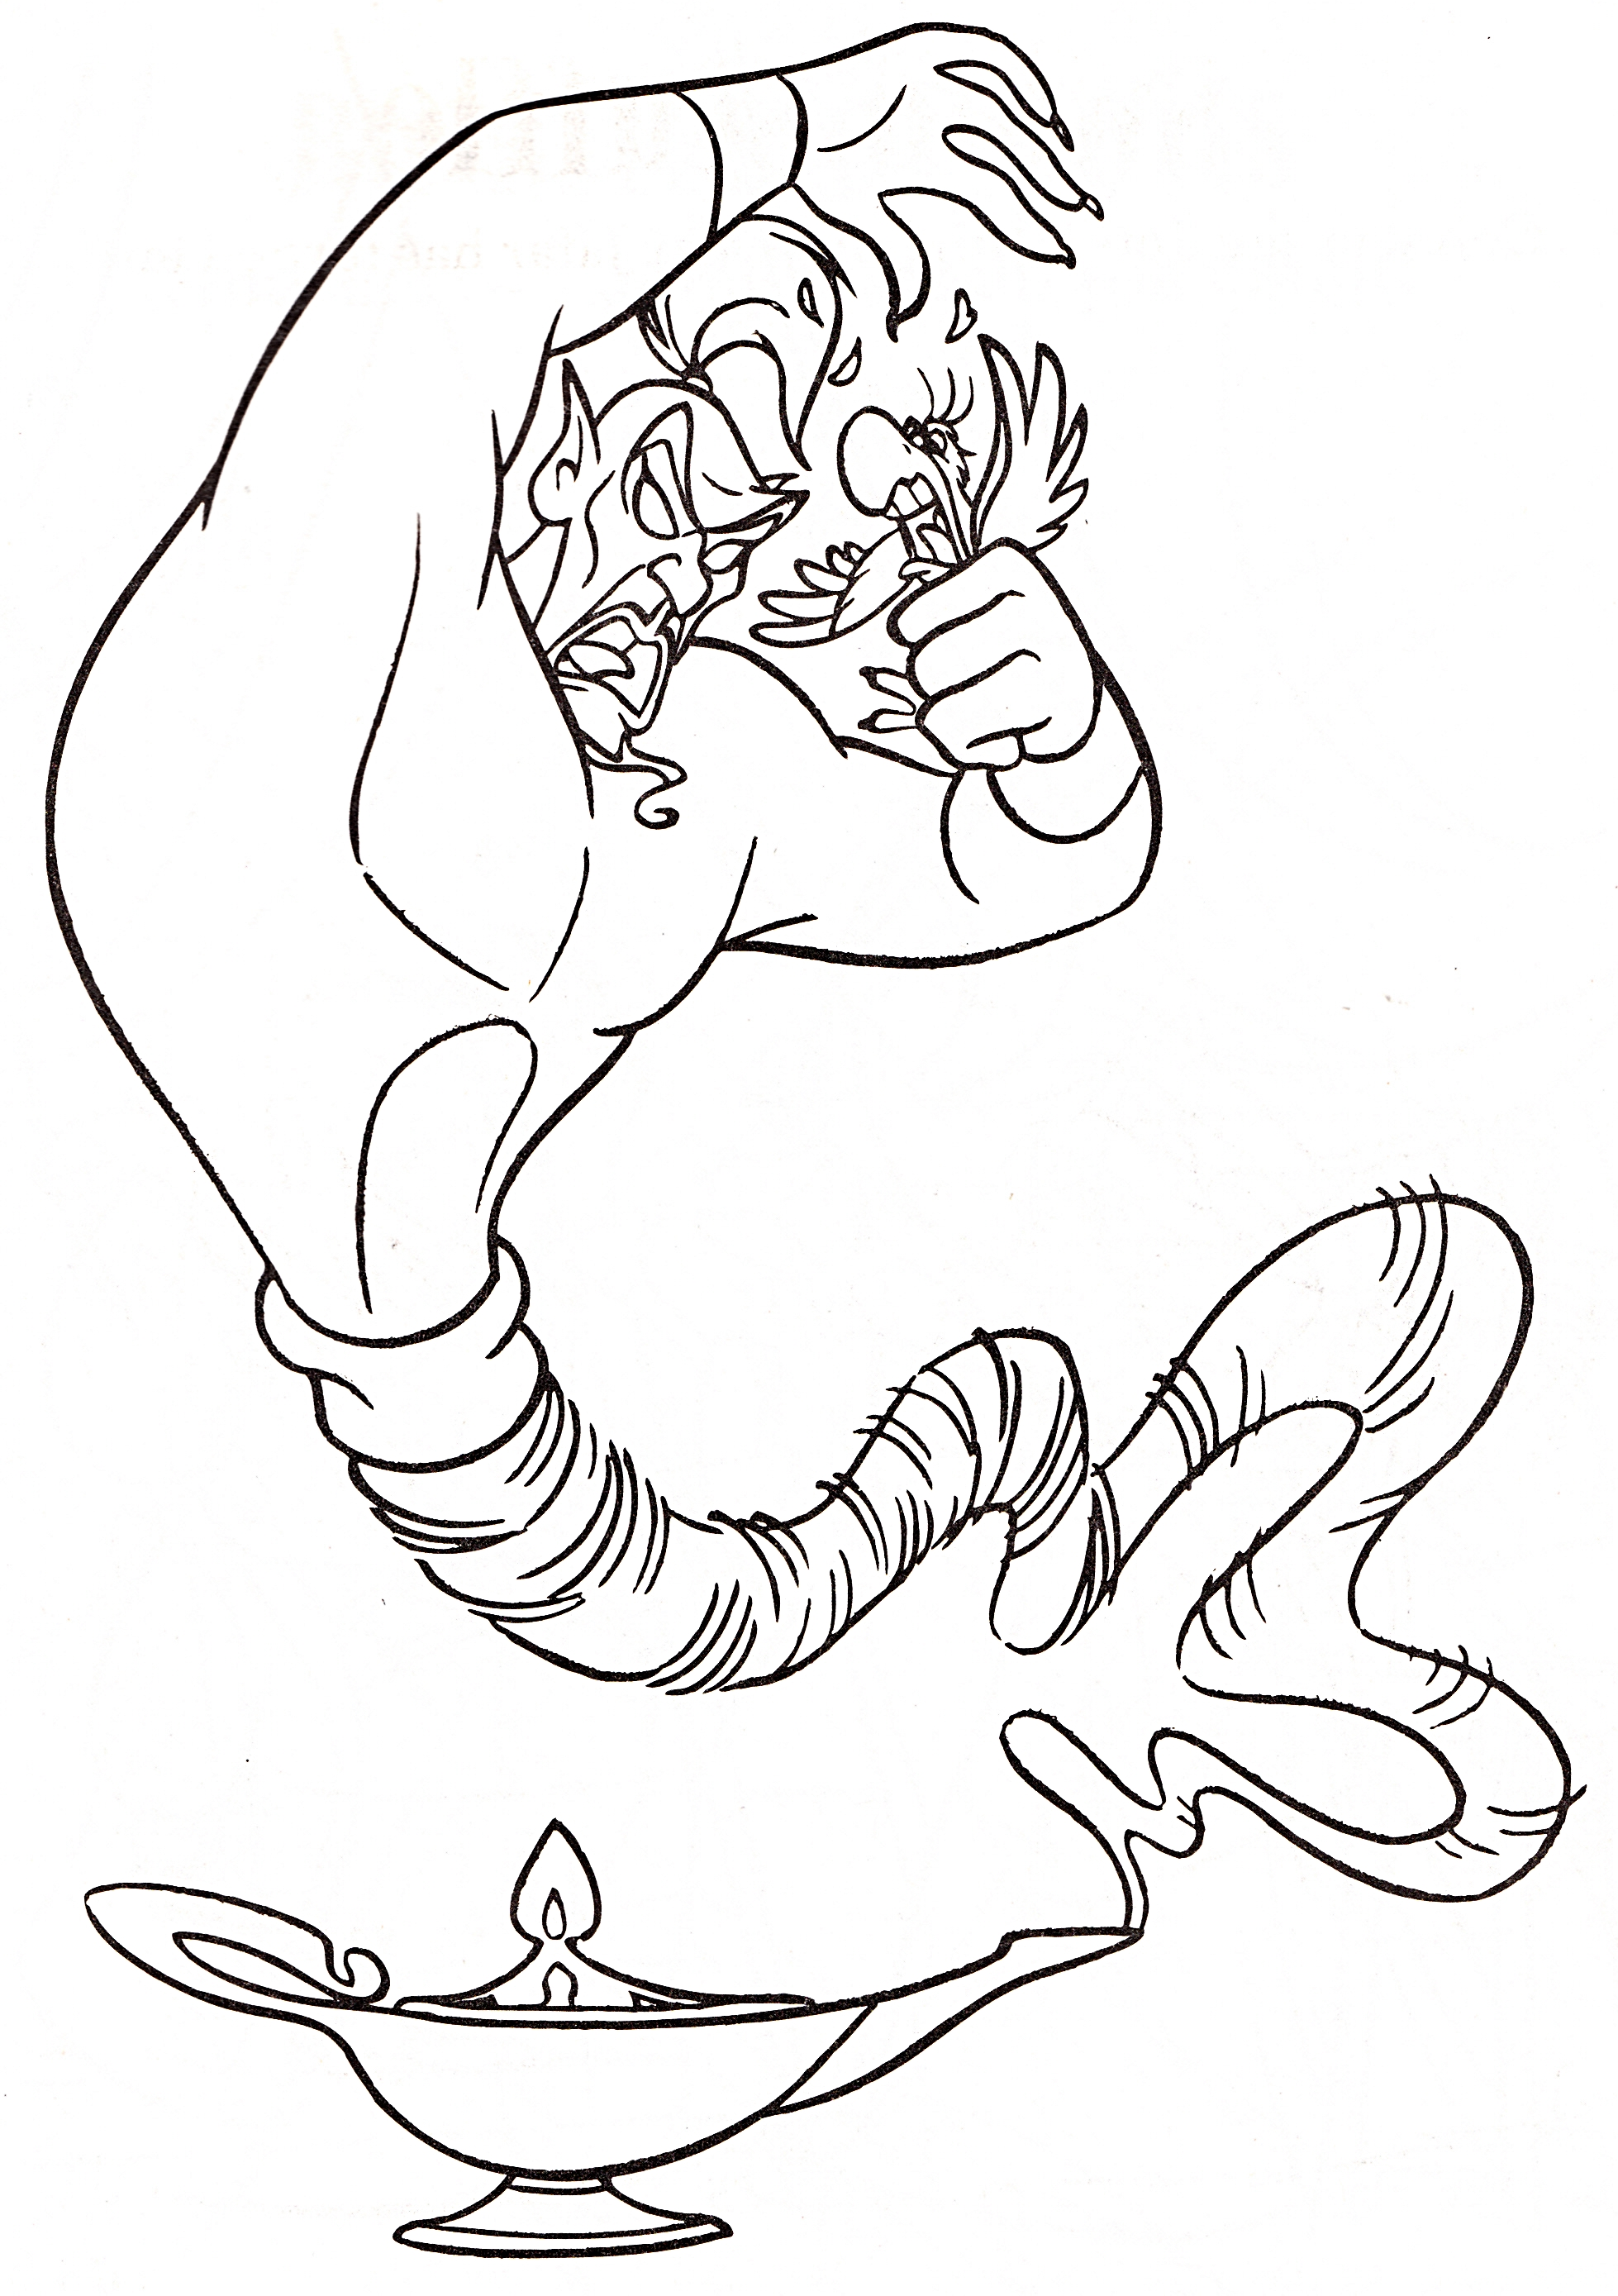 jafar coloring pages personajes de walt disney imágenes Walt disney Coloring Pages  jafar coloring pages